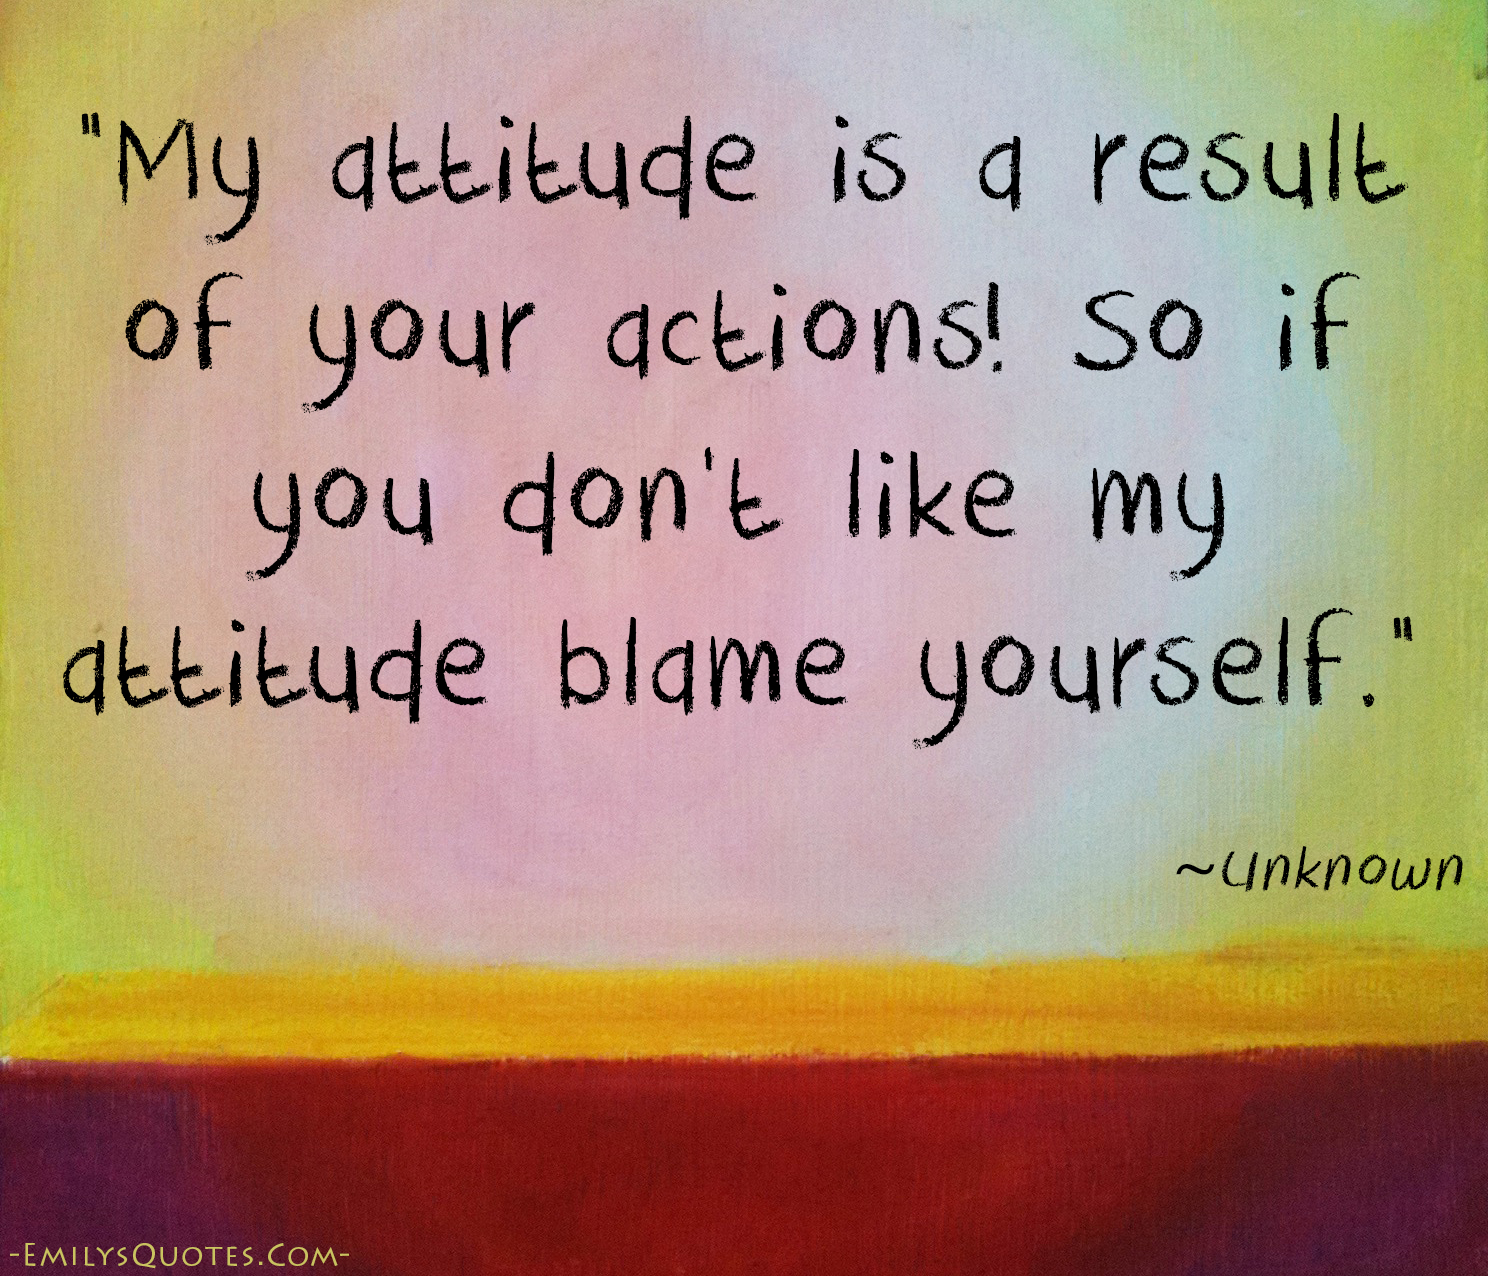 My Attitude Is A Result Of Your Actions So If You Don T Like My Attitude Blame Yourself Popular Inspirational Quotes At Emilysquotes